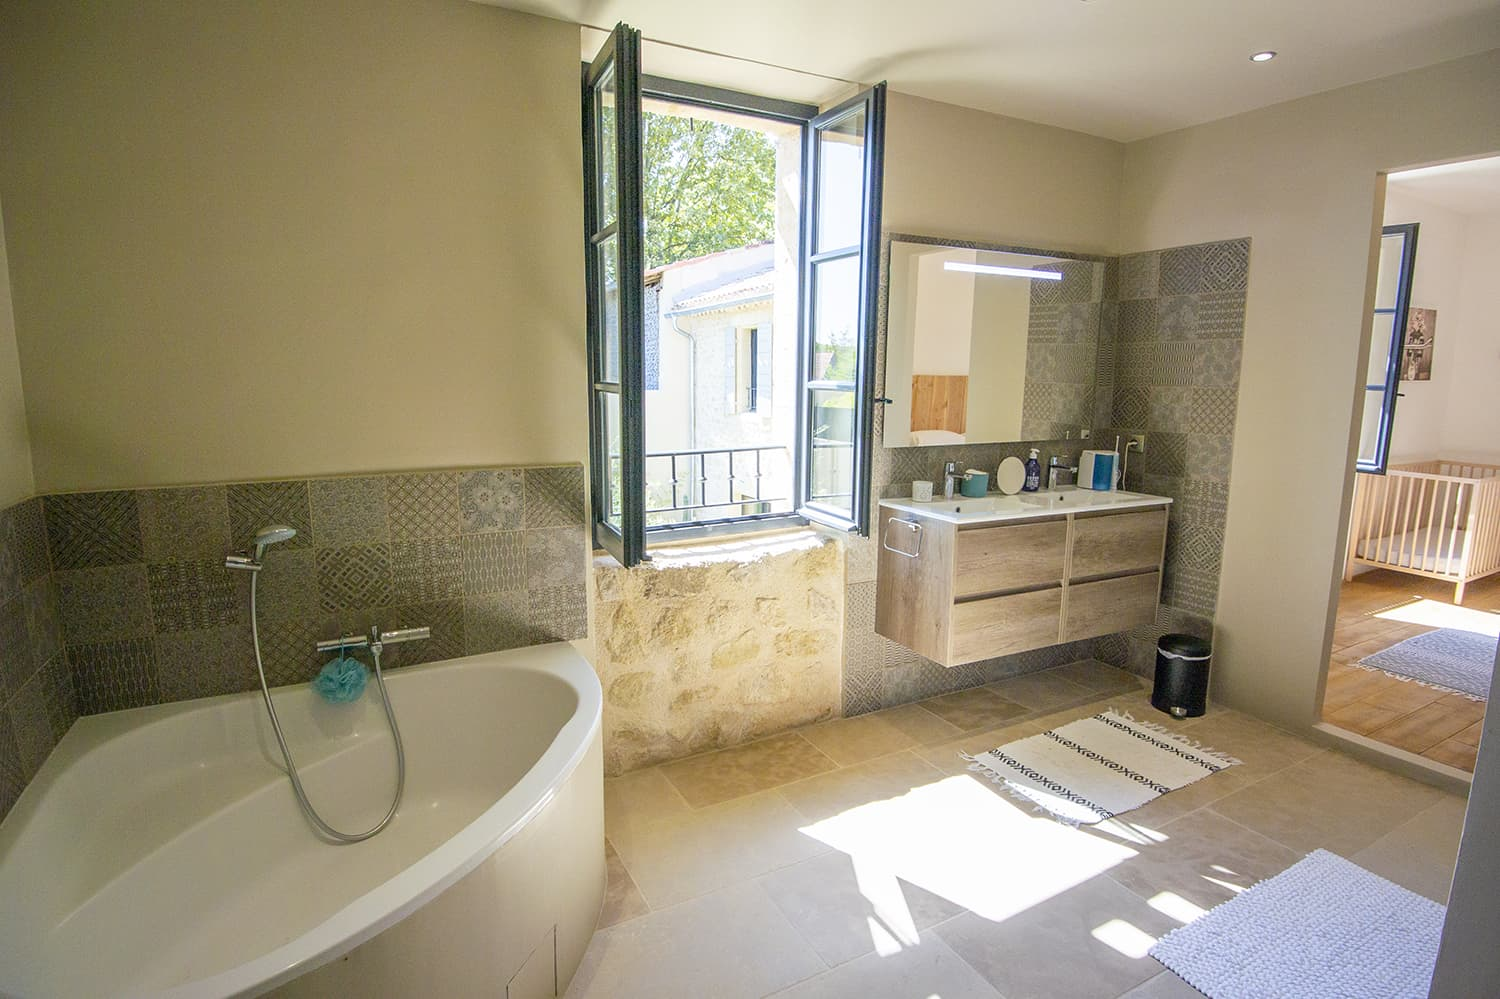 Bathroom in Provence-Alpes-Côte d'Azur holiday home